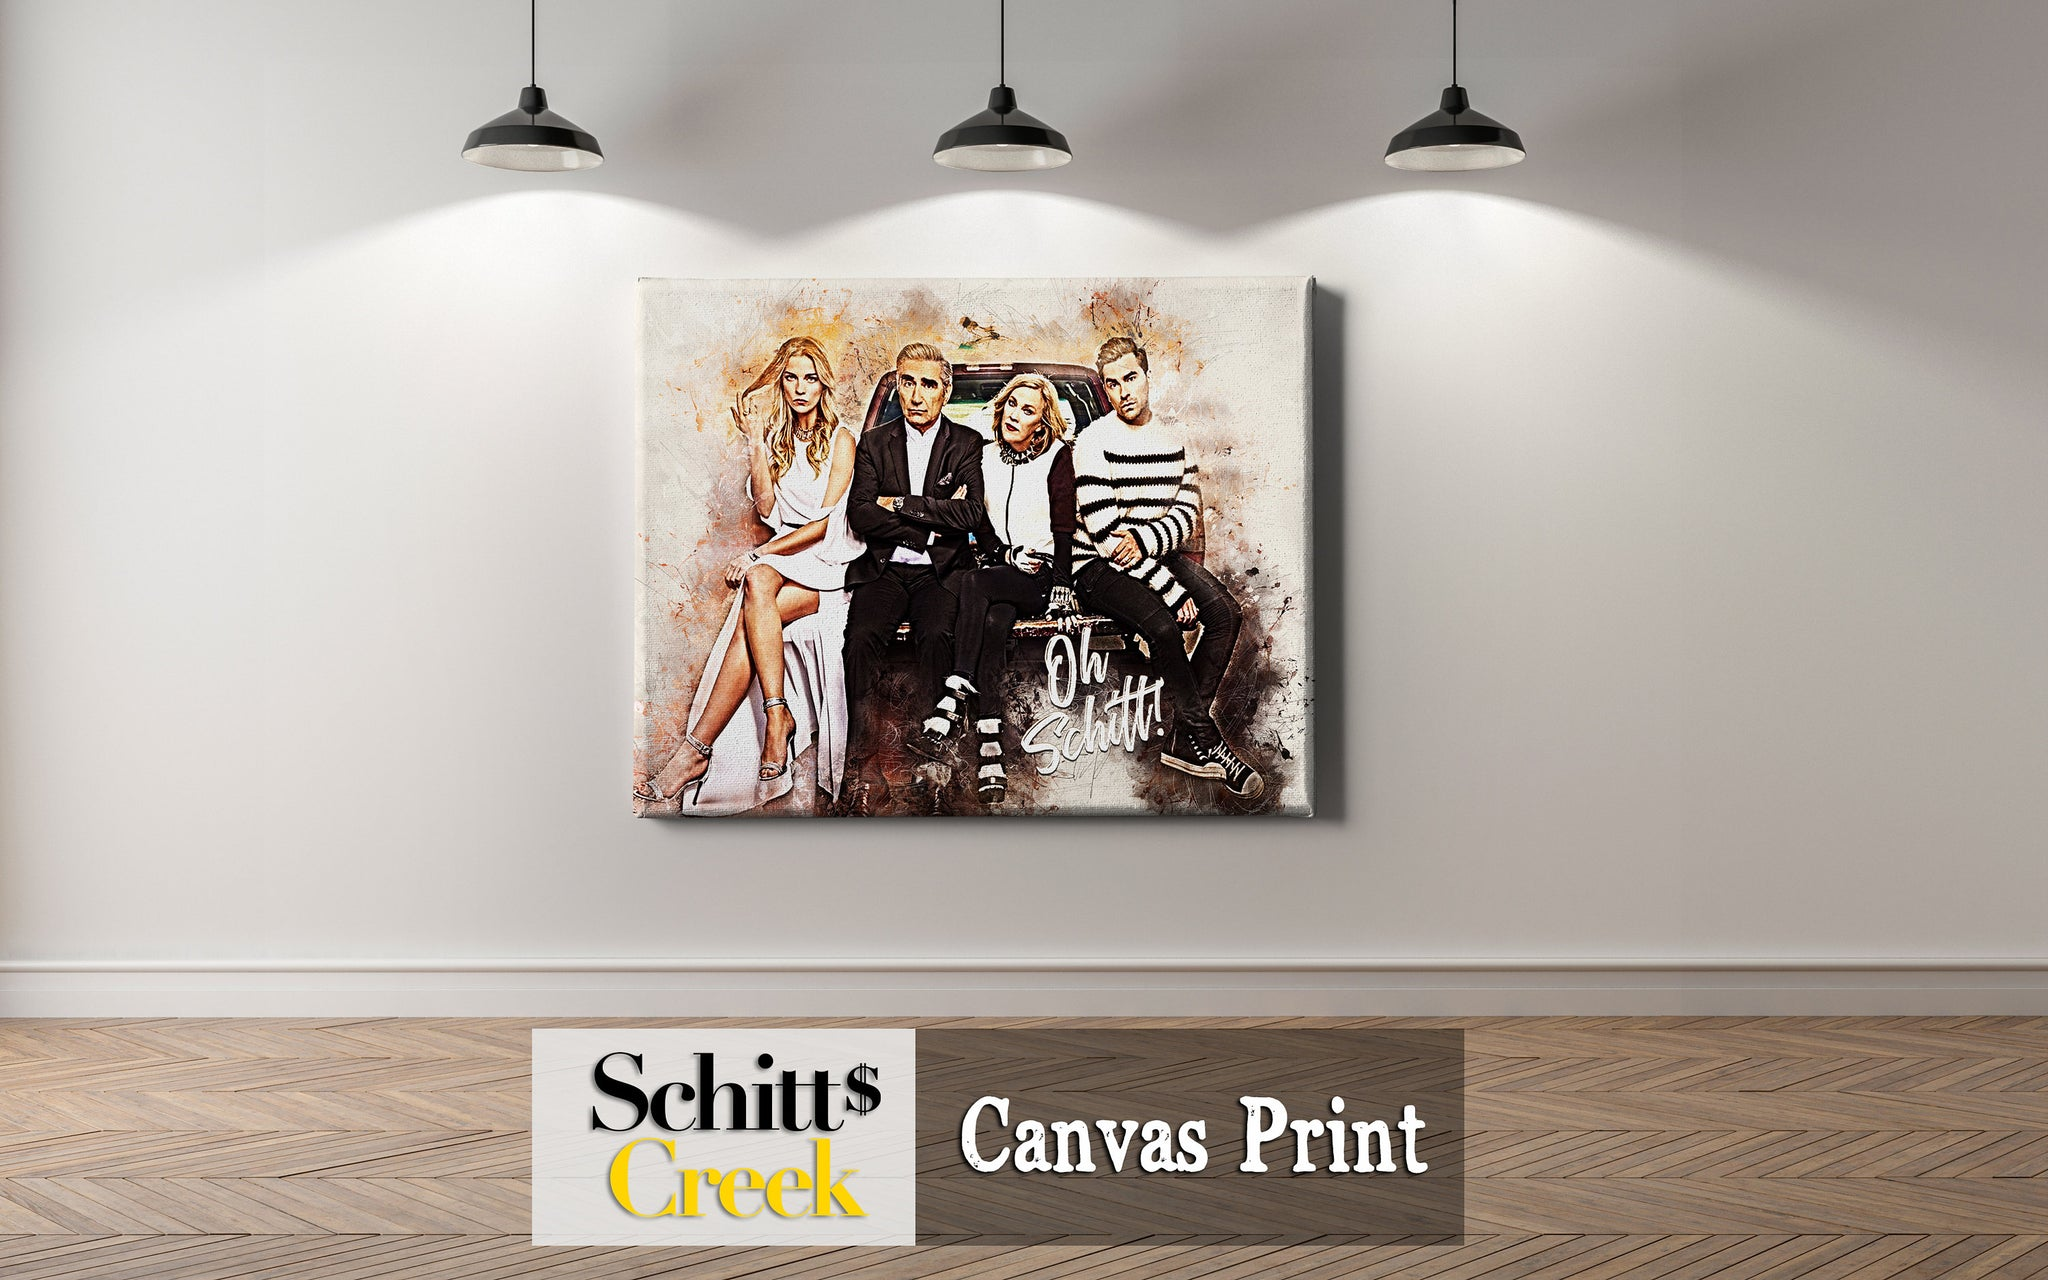 Schitts Creek Wall Decor, Schitts Creek Gifts, Schitts Creek Canvas Print Framed & Ready to Hang, Schitts Creek Wall Hanging